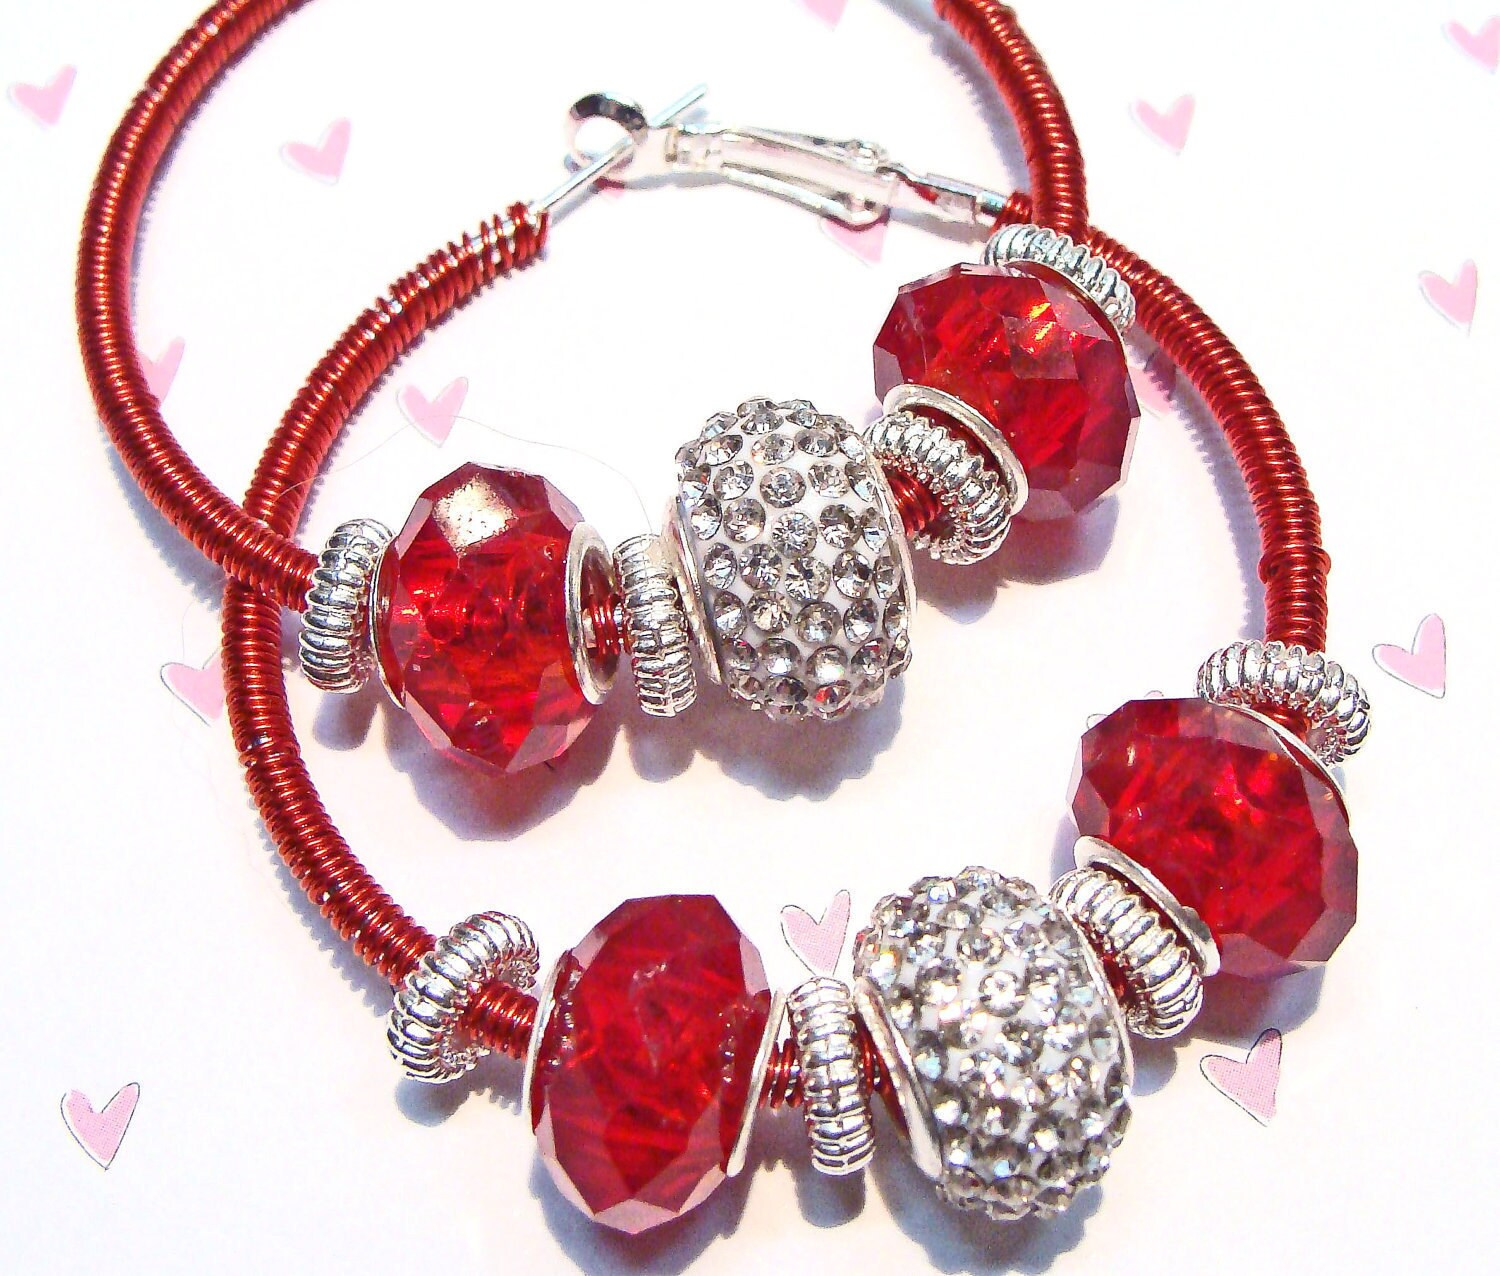 Hoop Earrings on Red Wire Wrapped Hoop Earrings With Crystals And European Large Hole